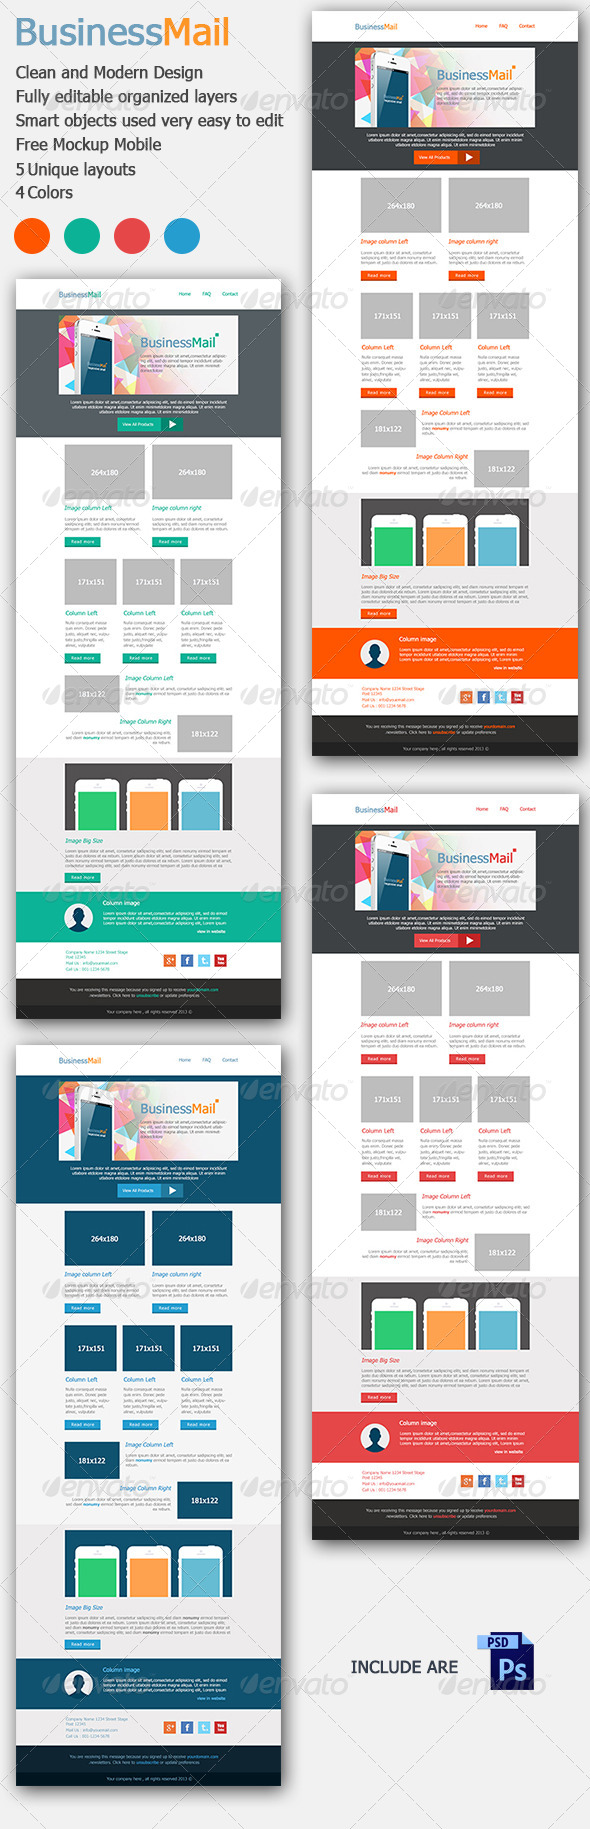 GraphicRiver Business Mail E-mail Template 5175111